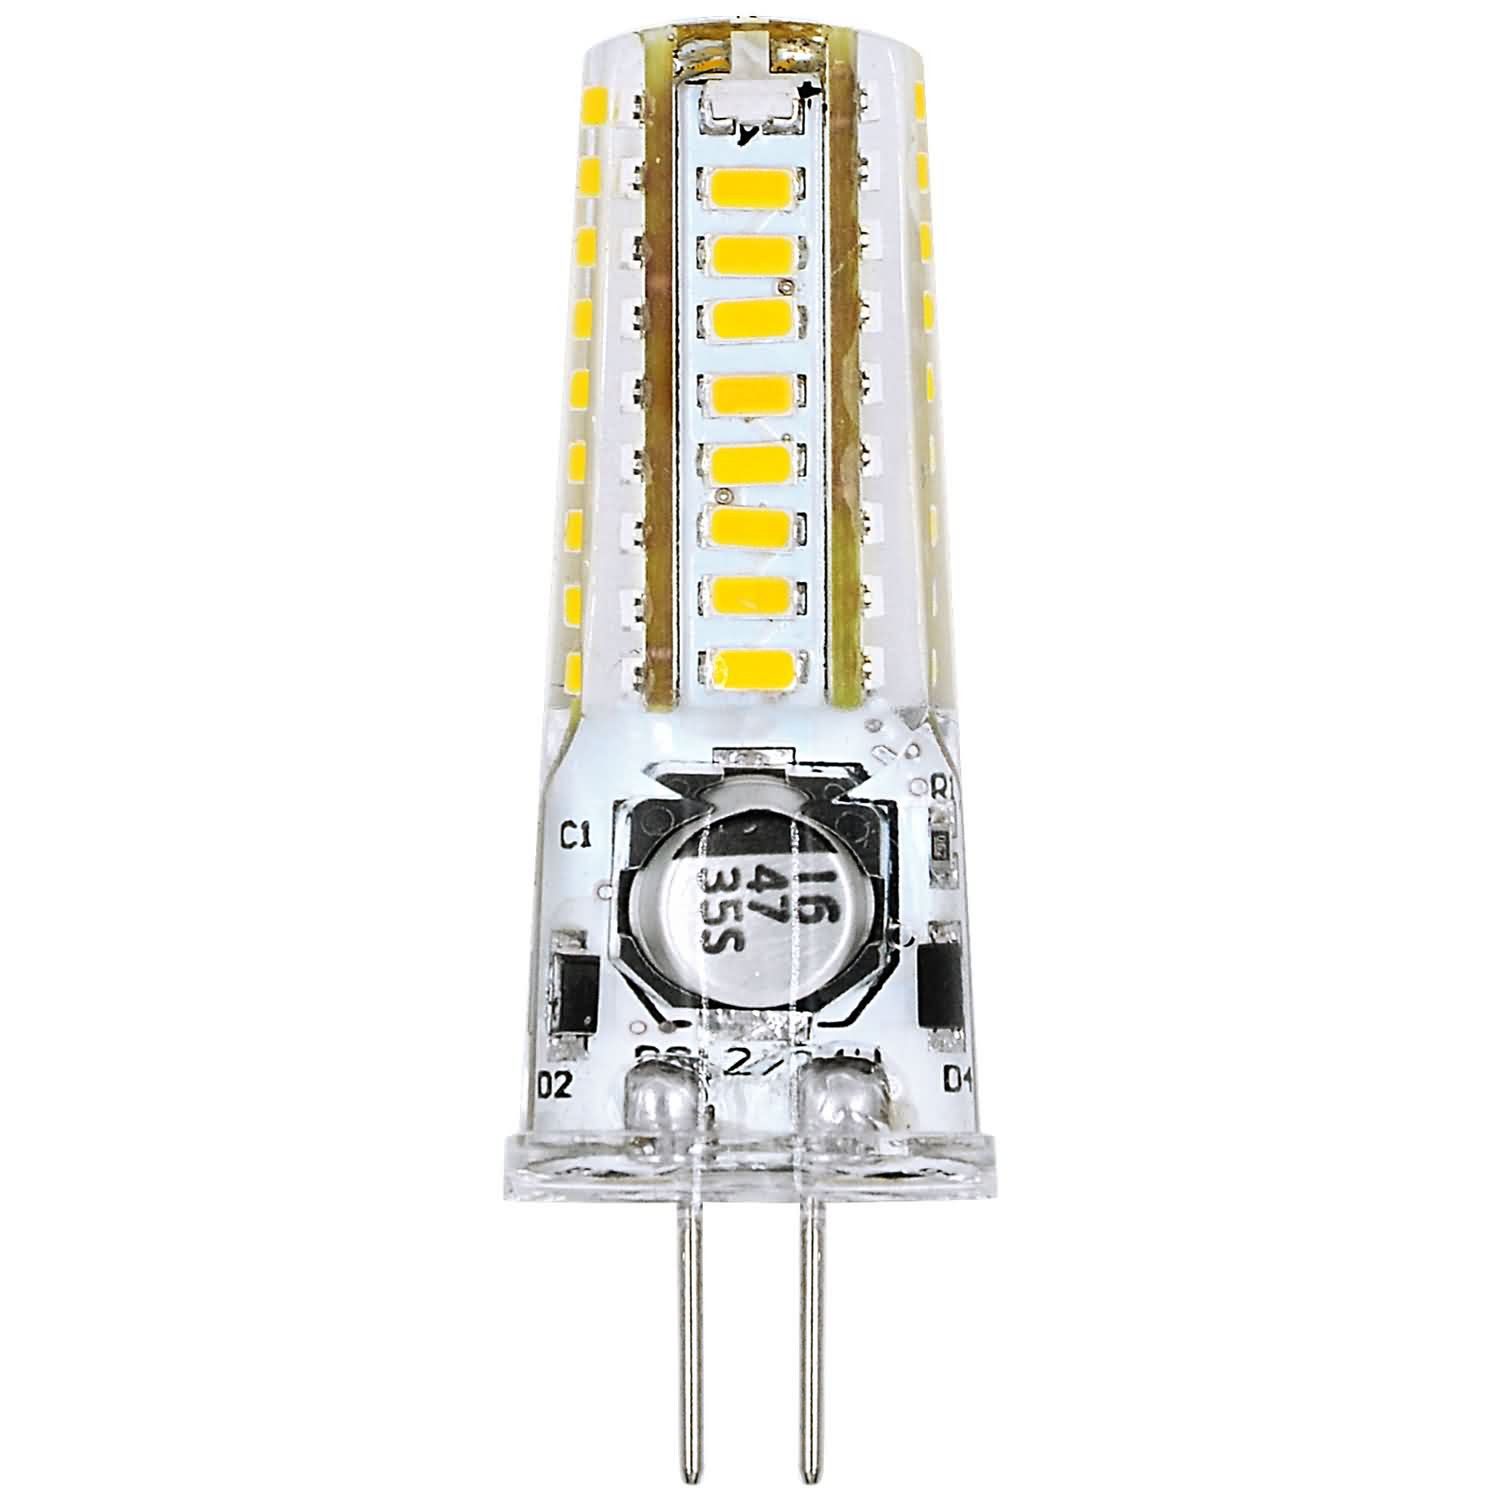 MENGS® G4 3W LED Light With Silicone Material 36x 3014 SMD LED Bulb Lamp AC/DC 12V In Warm White Energy-Saving Light